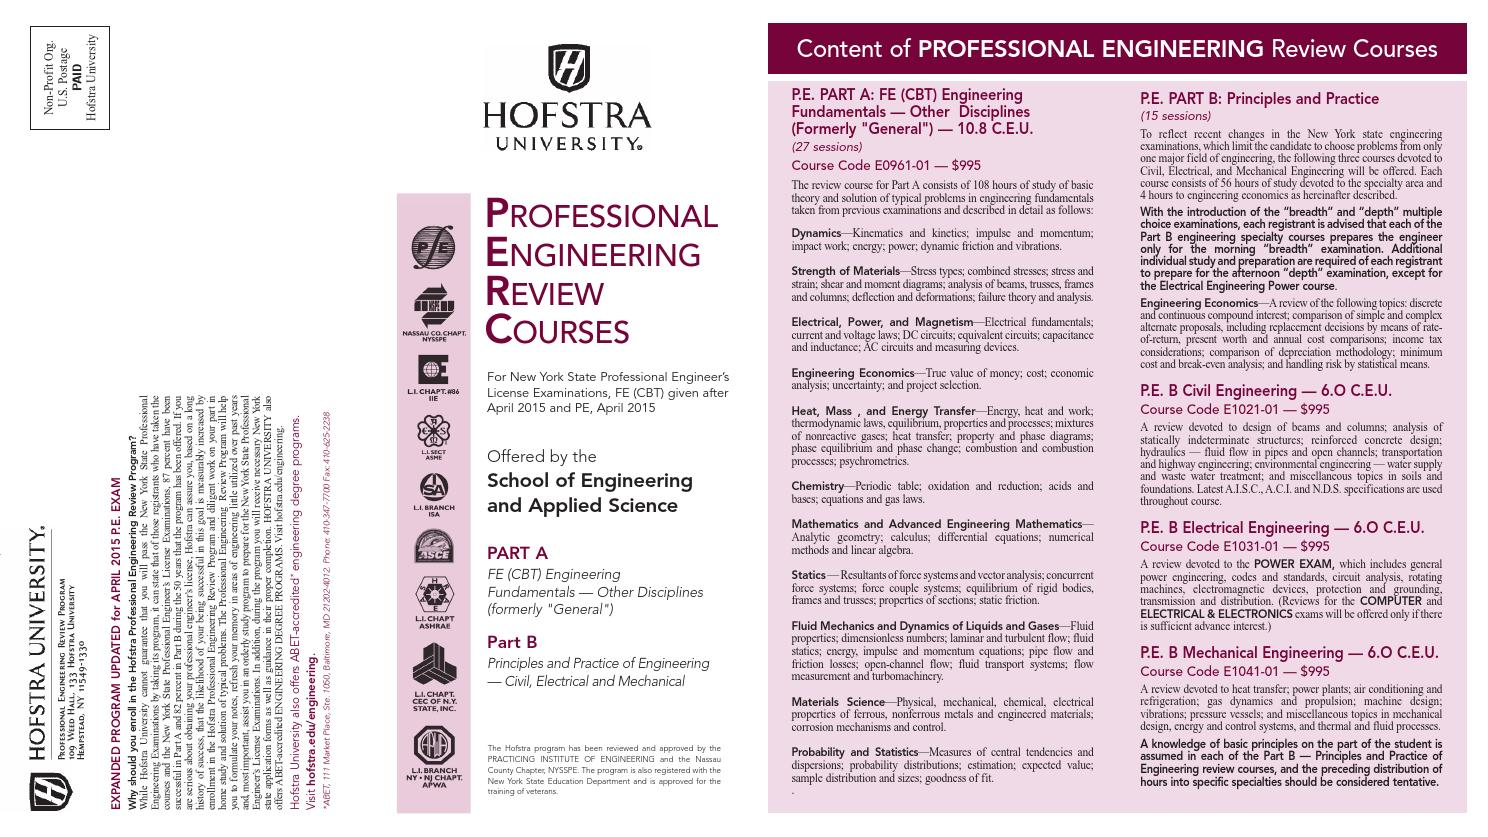 Professional Engineering Review Courses by Hofstra